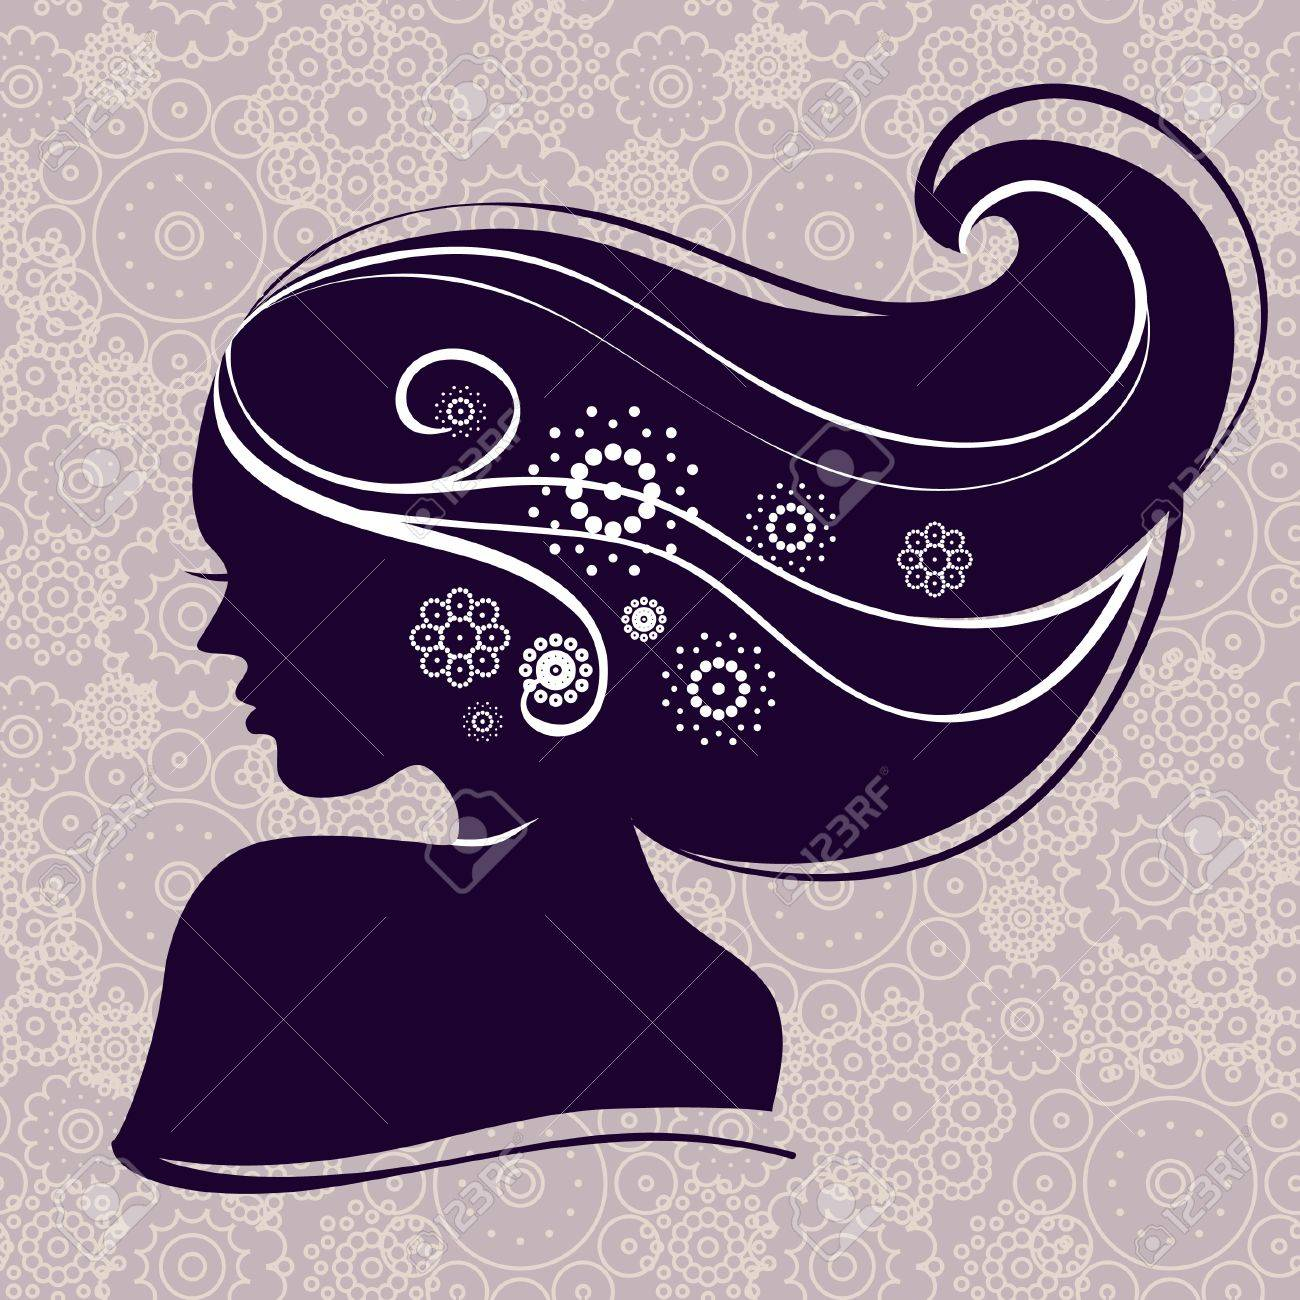 Beautiful woman silhouette with flowers Stock Vector - 15858603